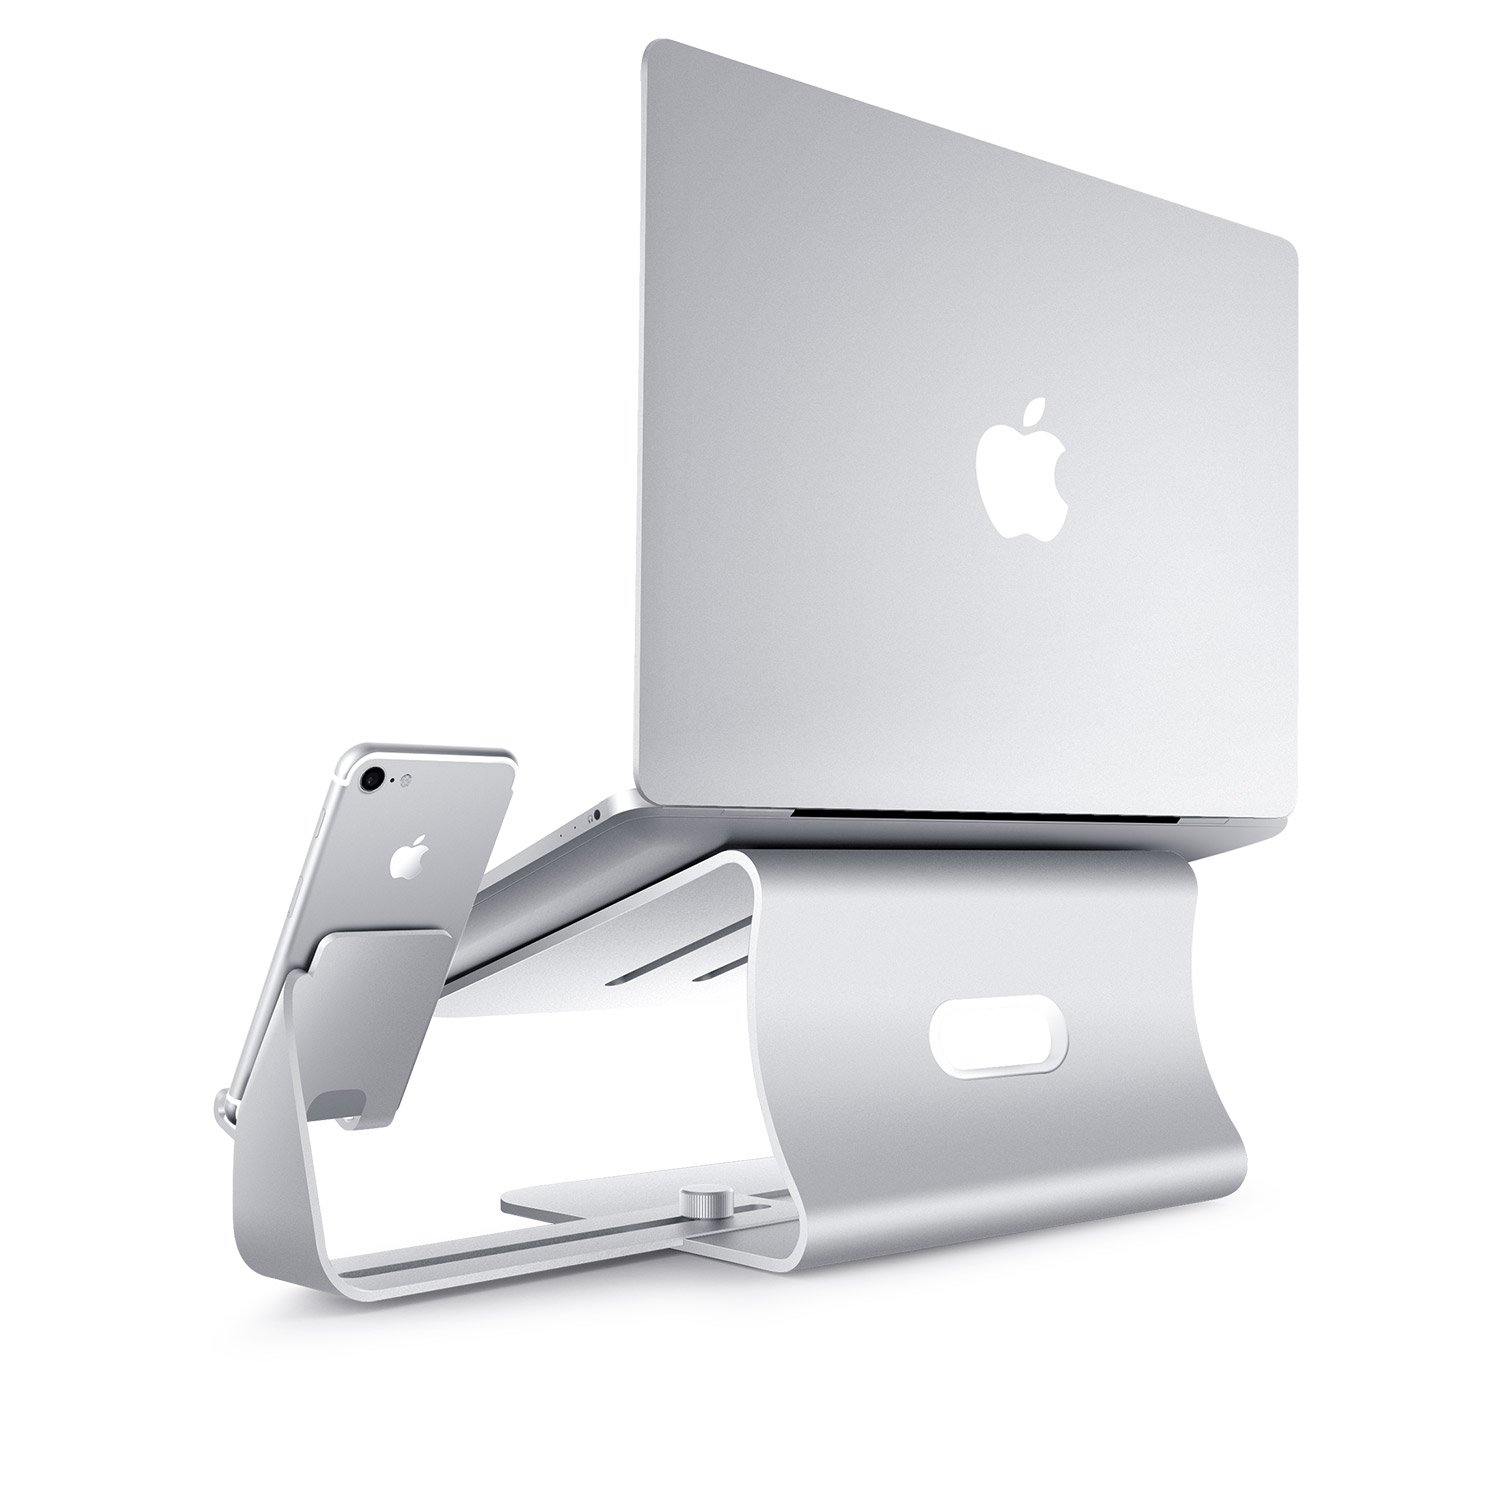 2 in 1 Laptop and Phone Stand - Bestand Aluminum Cooling Computer Stand: [UPDATE VERSION] Stand, Holder for Apple Macbook Air, Macbook Pro, All Notebooks, iPhone Series, Silver (Patented) by Bestand (Image #3)